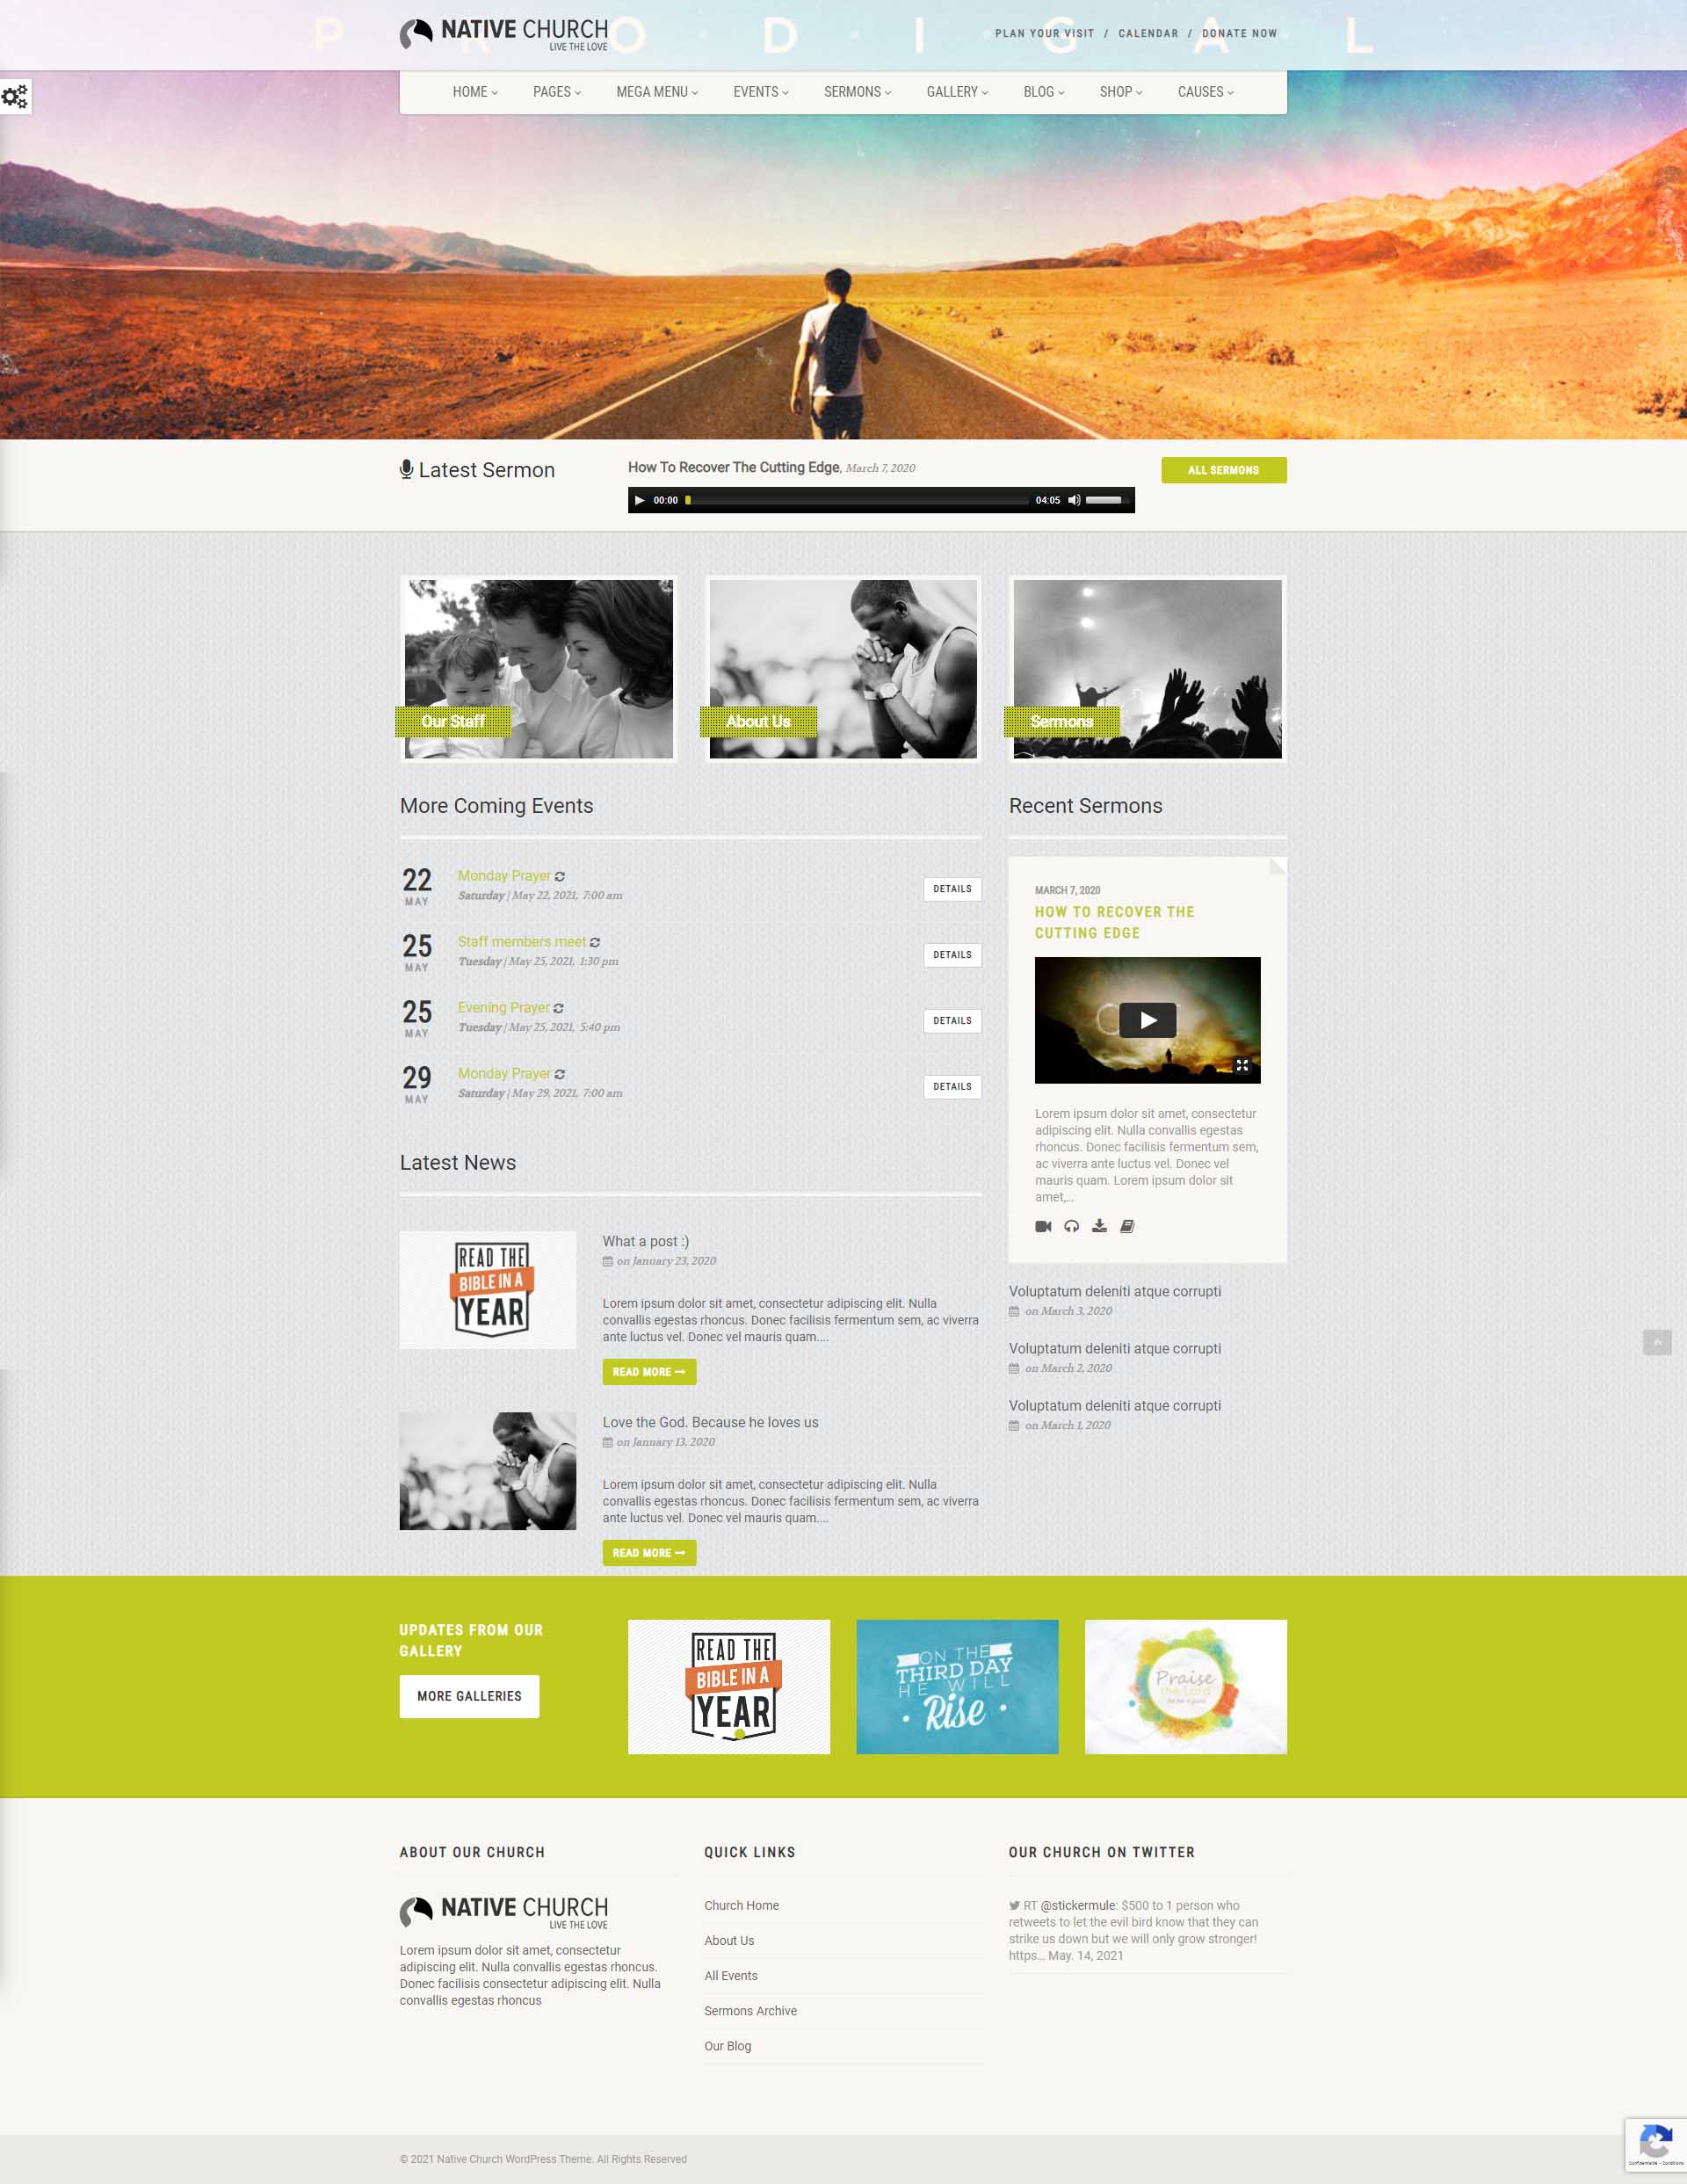 NativeChurch : Template wordpress pour ONG